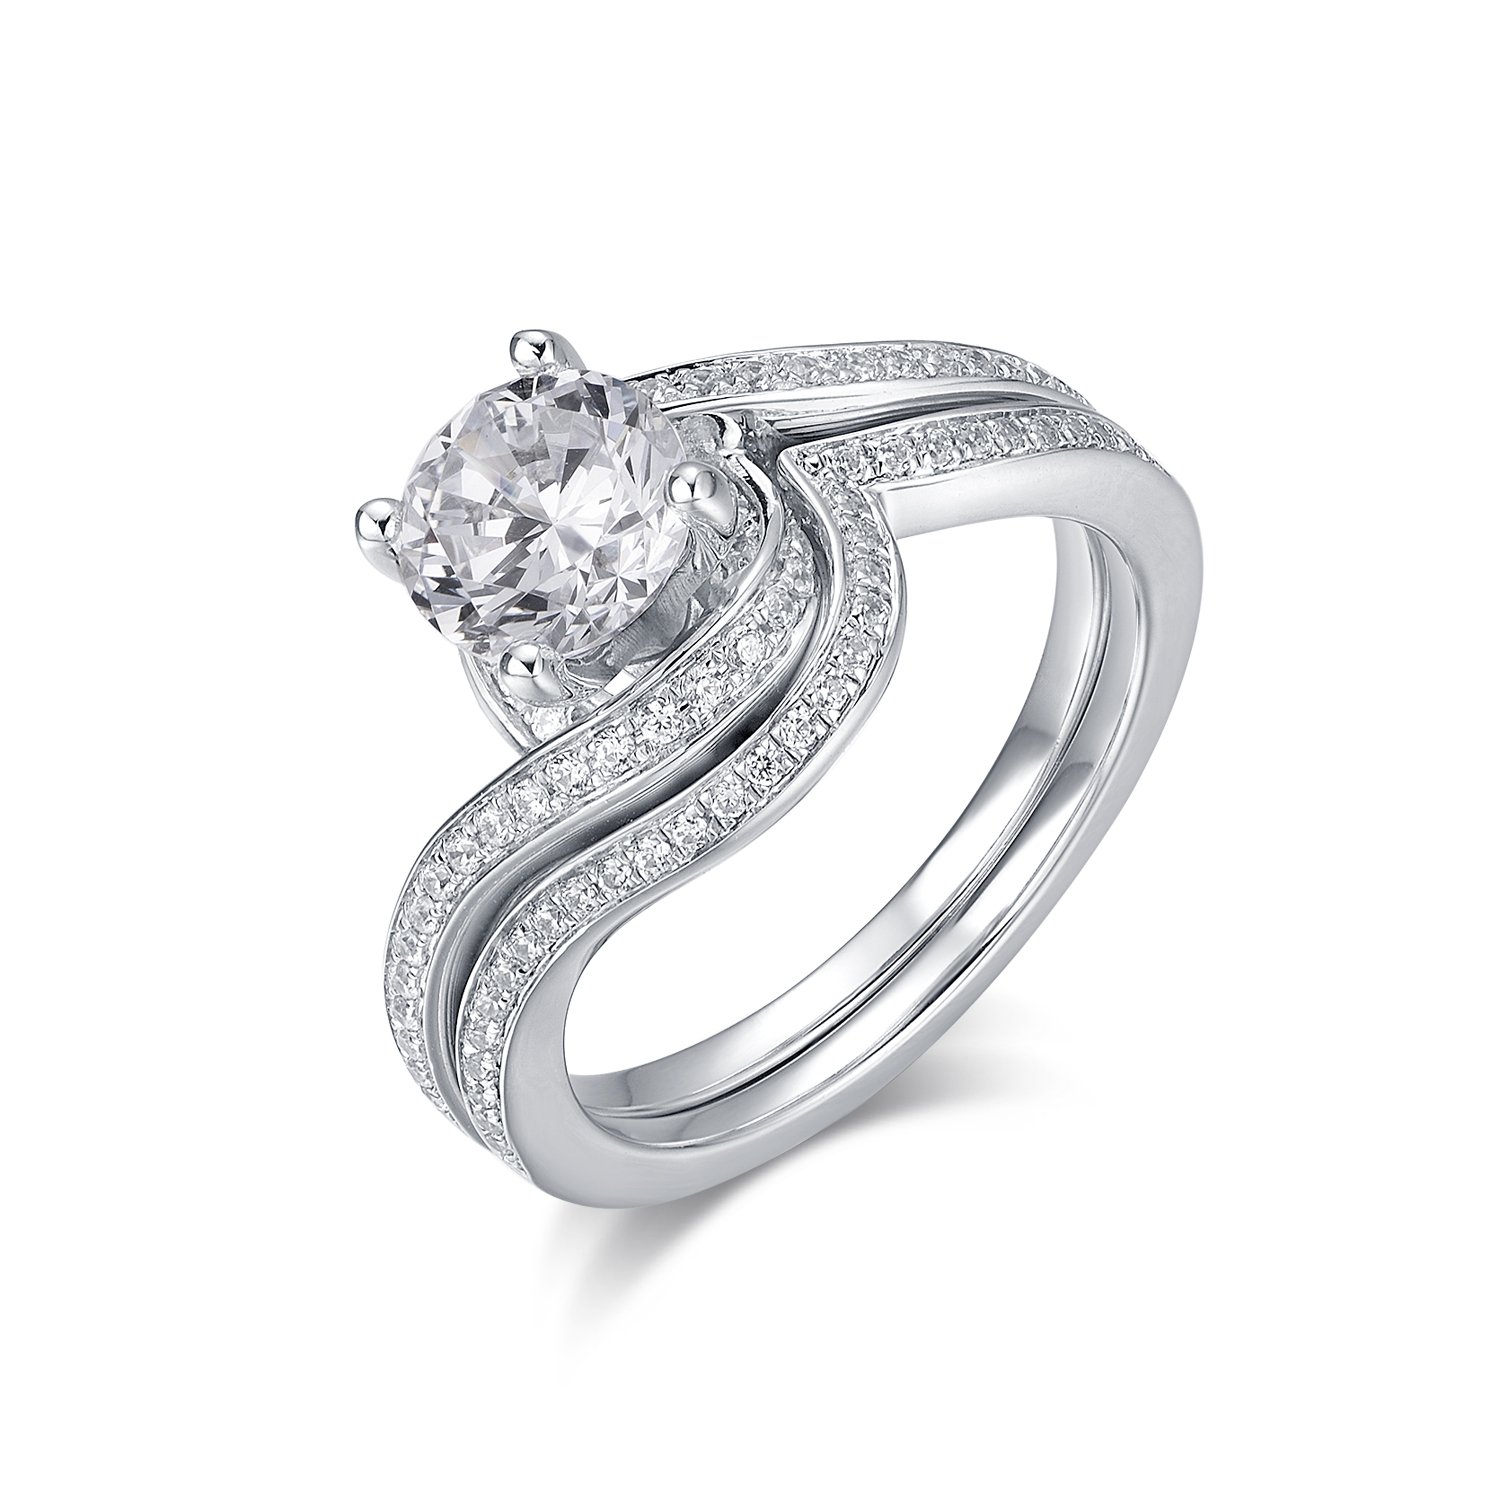 Hafeez Center Rhodium Plated Sterling Silver 4-Prong Set Round Brilliant Cut CZ Bridal Set Ring (9.5)